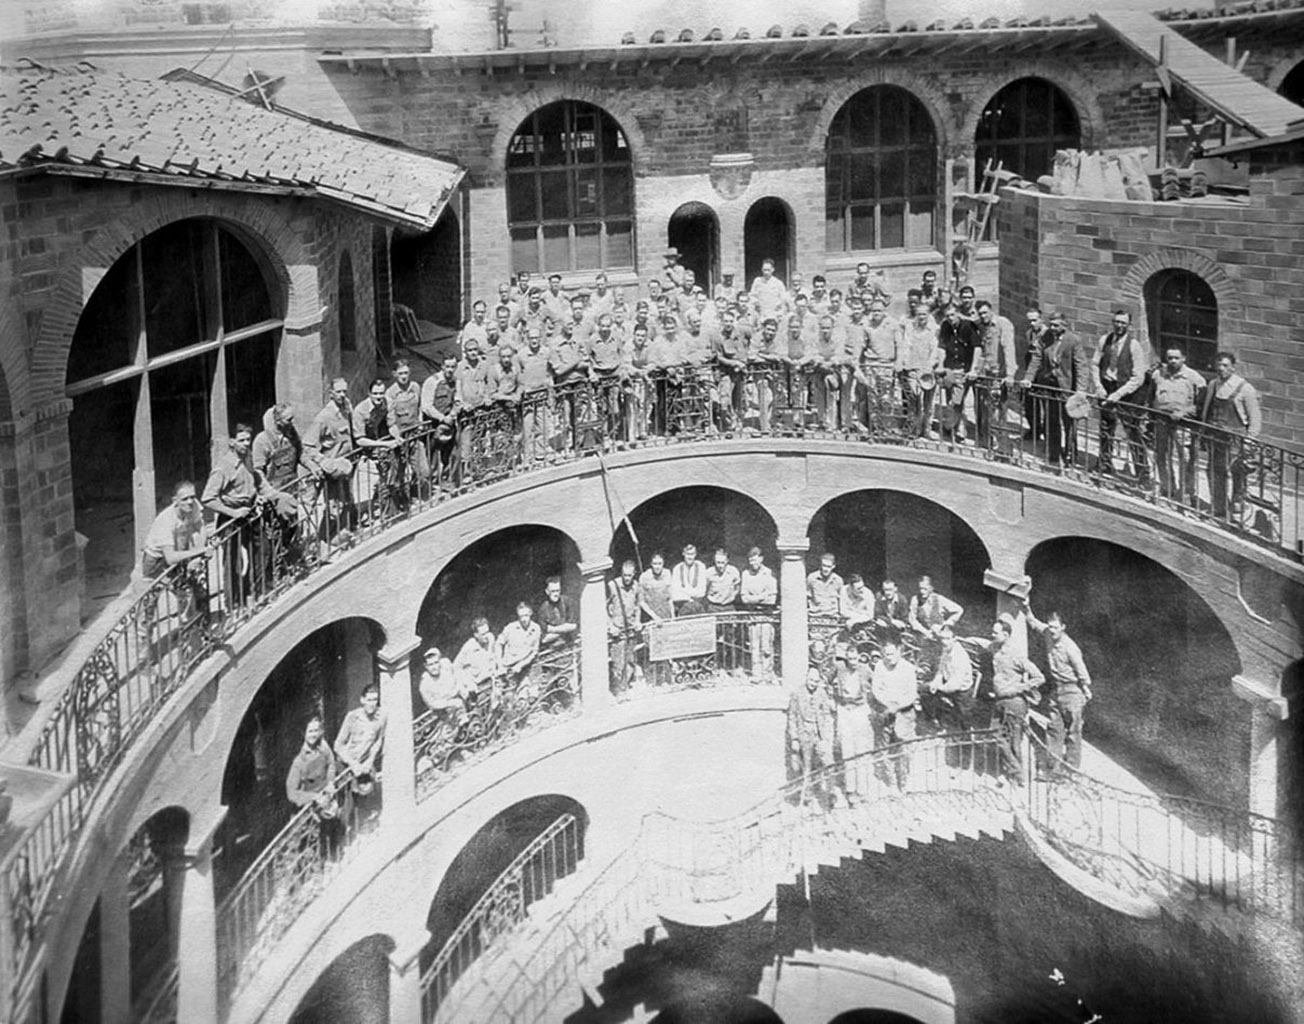 large group of men standing on exterior balcony and stairs of Mi